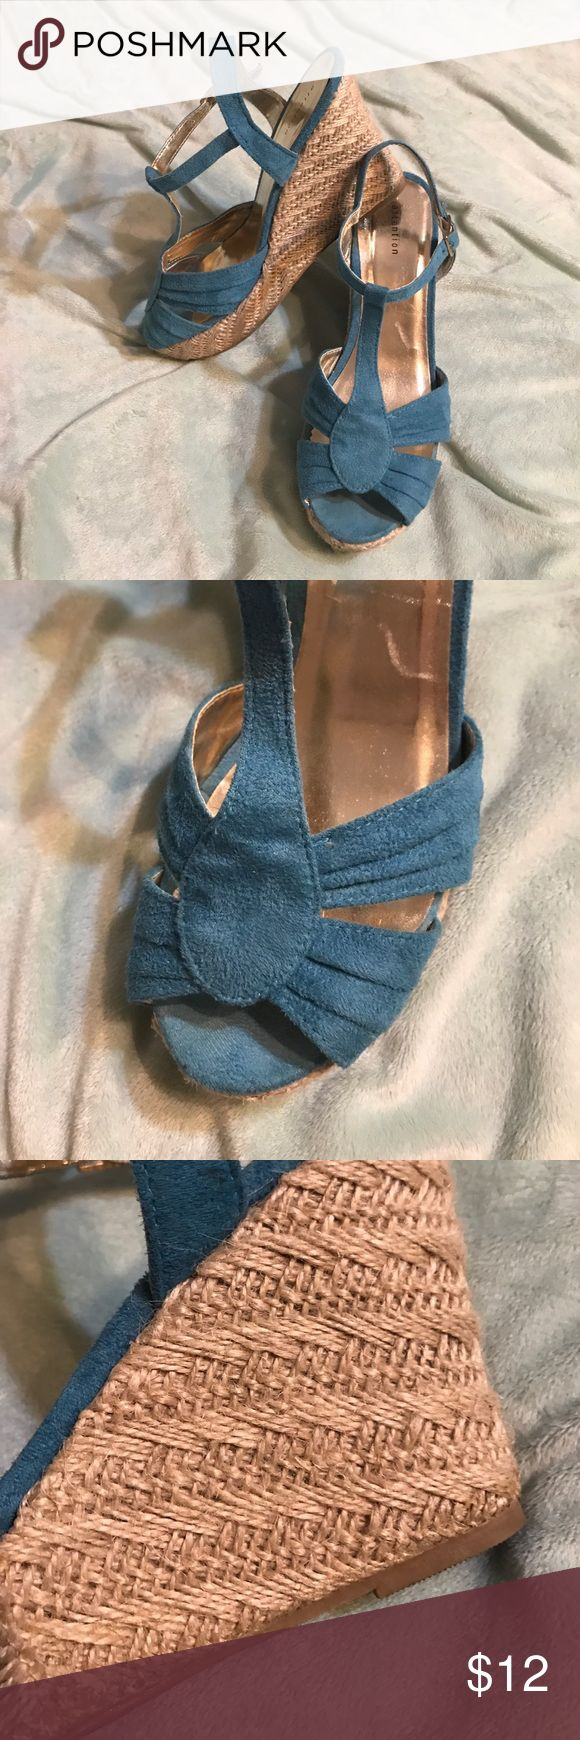 Turquoise wedge sandals. Size 8 So adorable. The woven wedge is so cute and turquoise is such a fun color. Size 8. Great condition Shoes Wedges